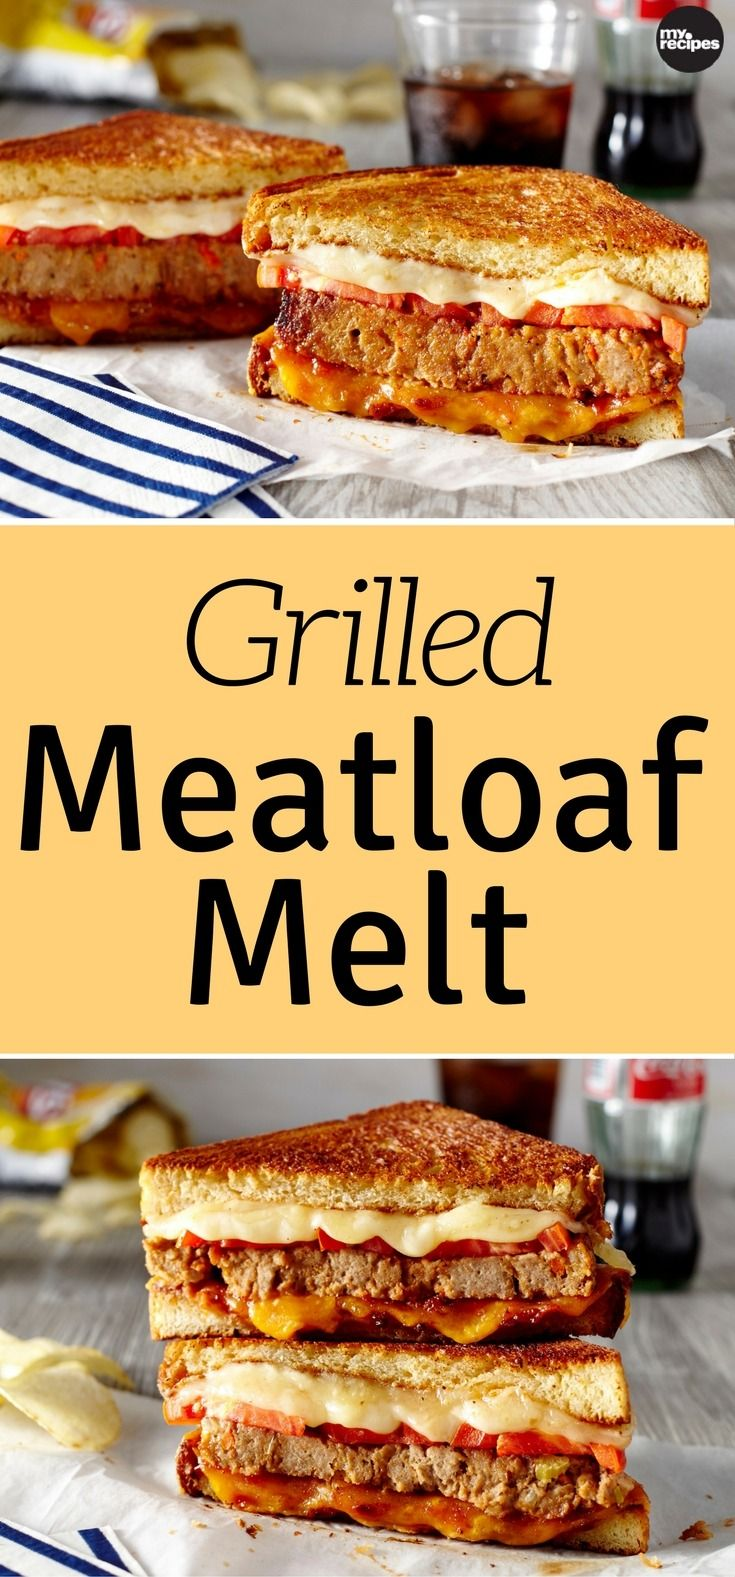 One of the best things about meatloaf for dinner is enjoying it the next day in the form of a fantastic and delicious down-home sandwich. Piled high with hearty layers of thick-sliced tomatoes, Havarti and cheddar cheese slices, and of course - meatloaf, this sandwich is sure to be an appetite satisfier. When prepped in a skillet, this grilled sandwich gets the ultimate homestyle flavor, reminiscent of getting a nostalgic bite to eat from a warm and welcoming Southern diner. | MyRecipes